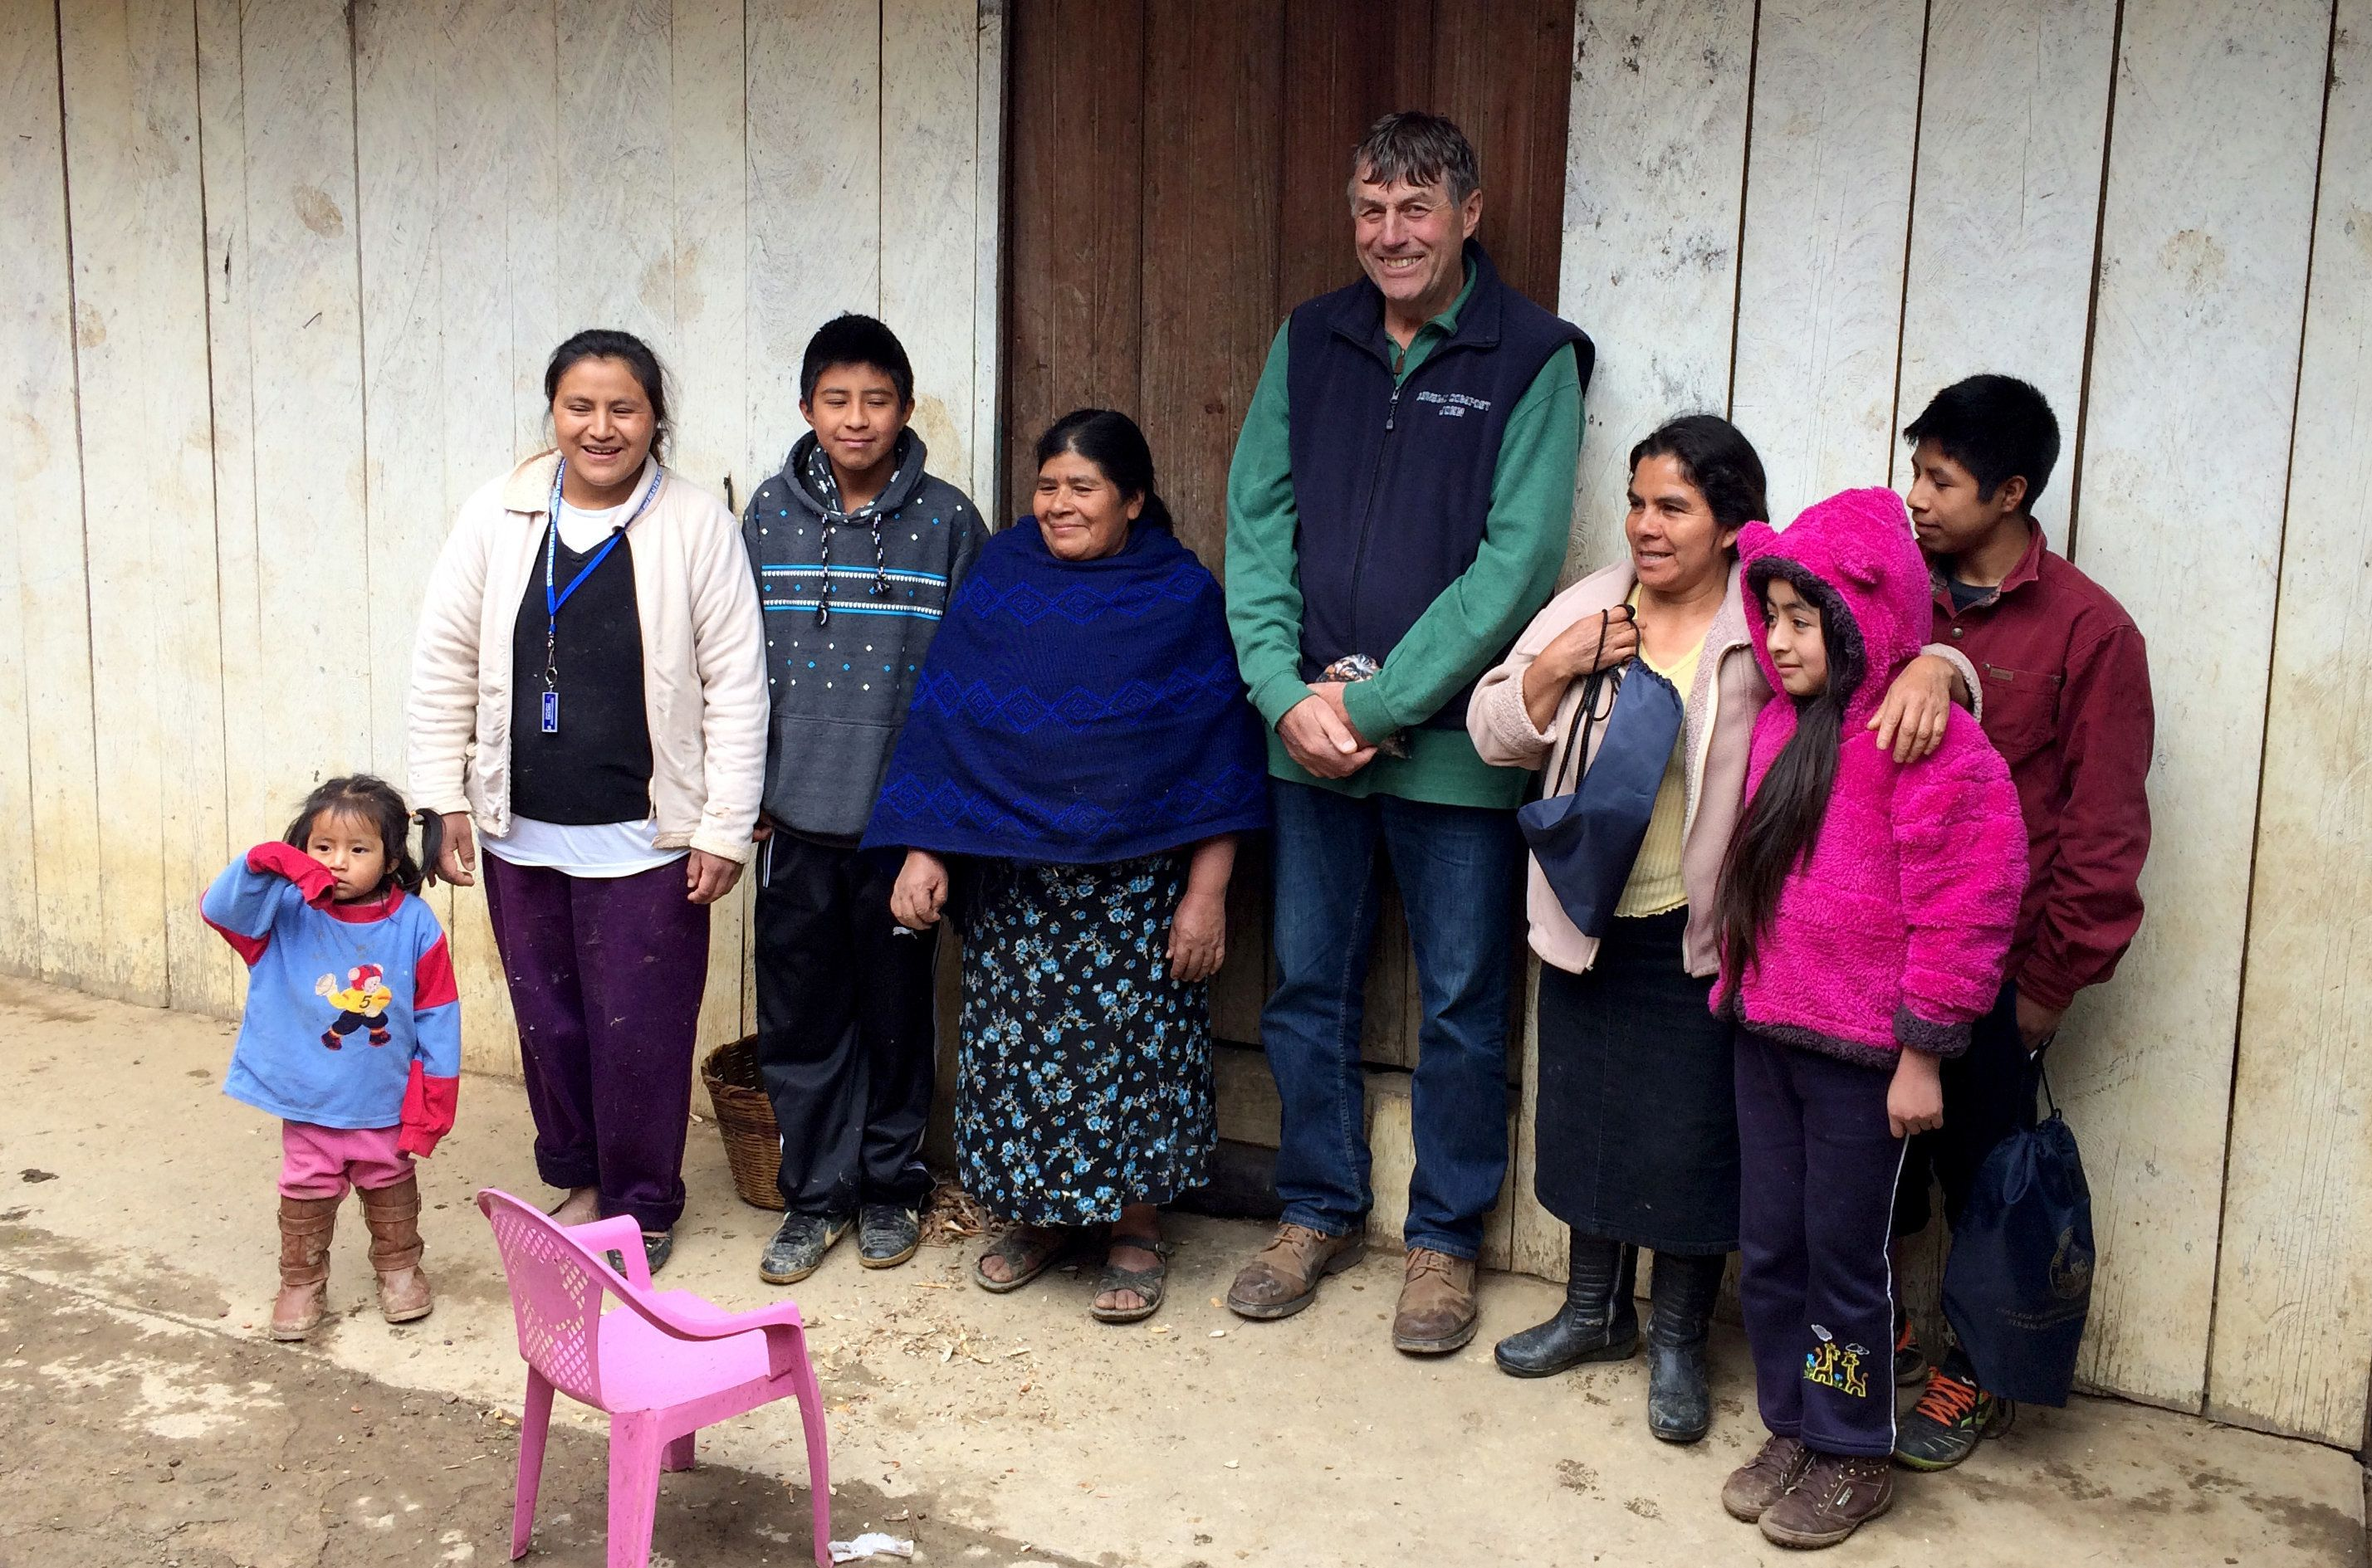 John Rosenow with the family of employee Roberto Tecpile at their home in rural Mexico in January of 2017. Rosenow made the c